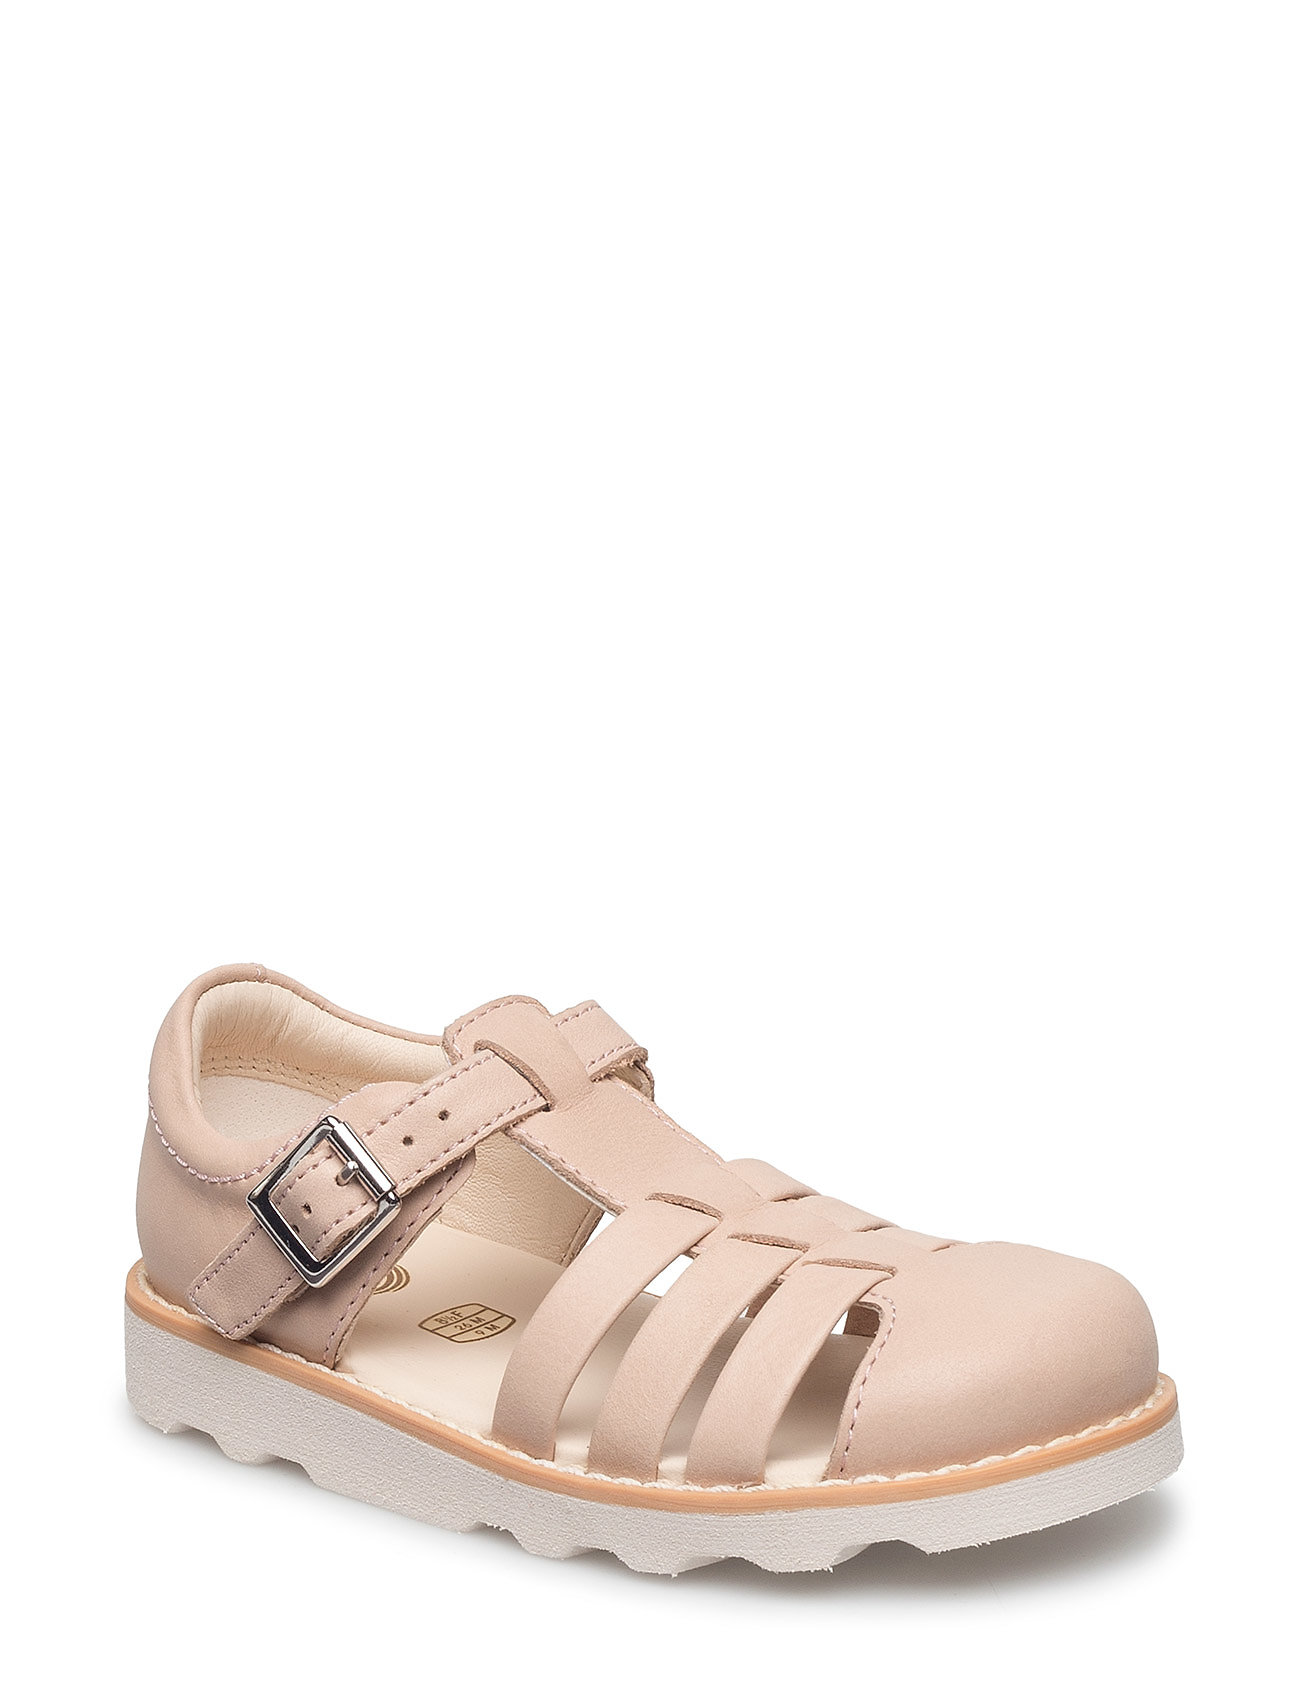 22646da9c57d5 Clarks Crown Stem. (Blush Leather), (38.97 €) | Large selection of ...